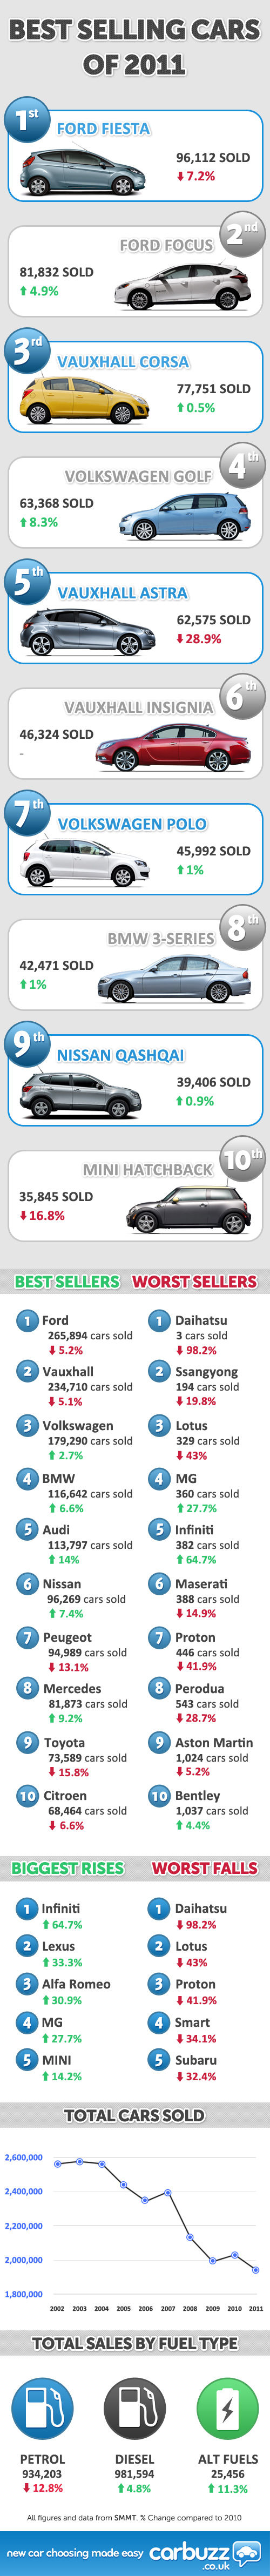 Best Selling Cars 2011 and New Car Sales